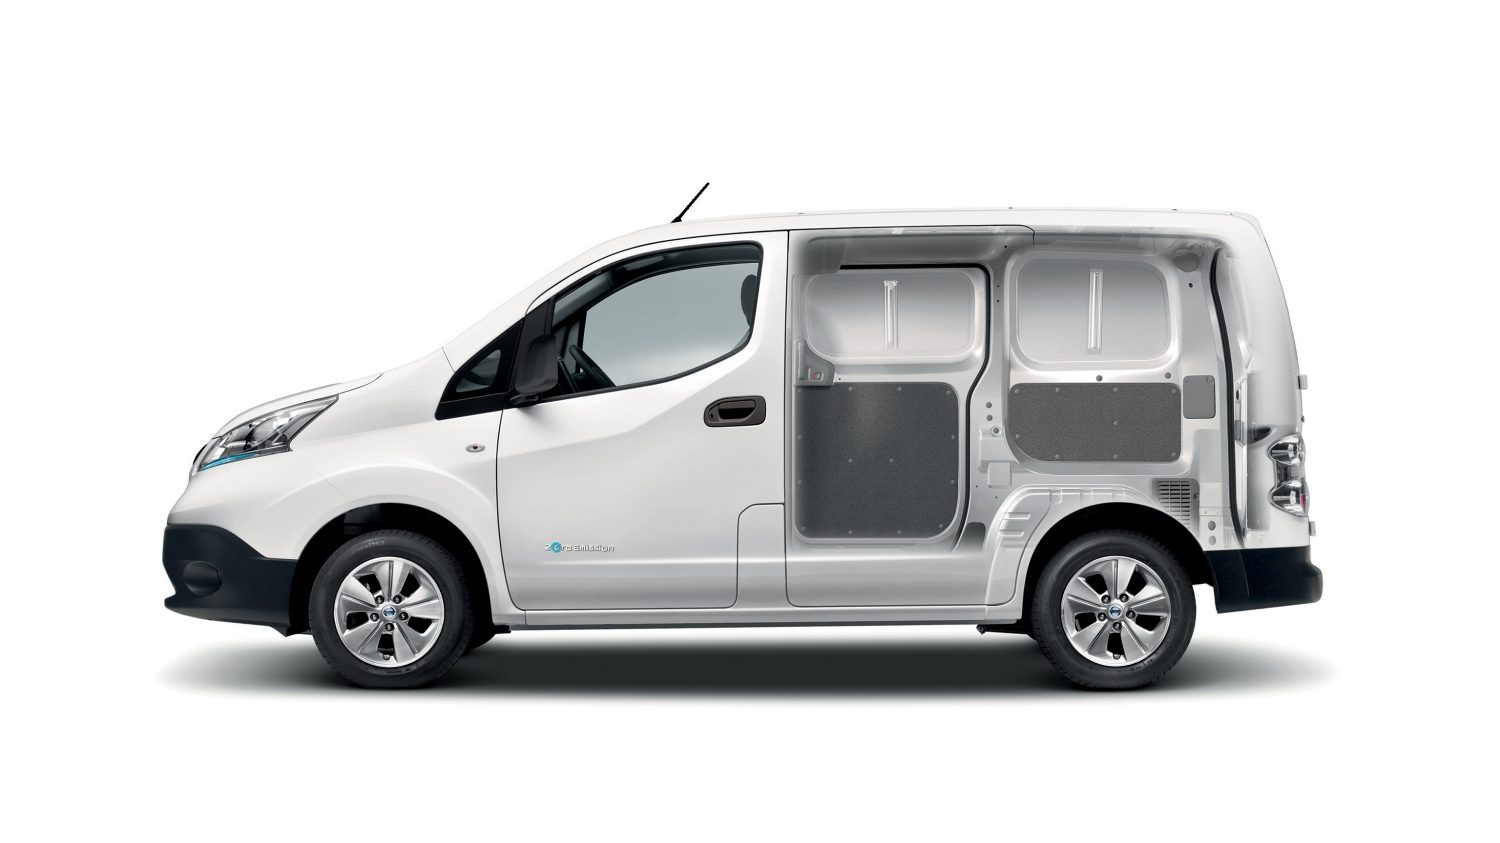 Van | Nissan e-NV200 | Electric van  loadspace